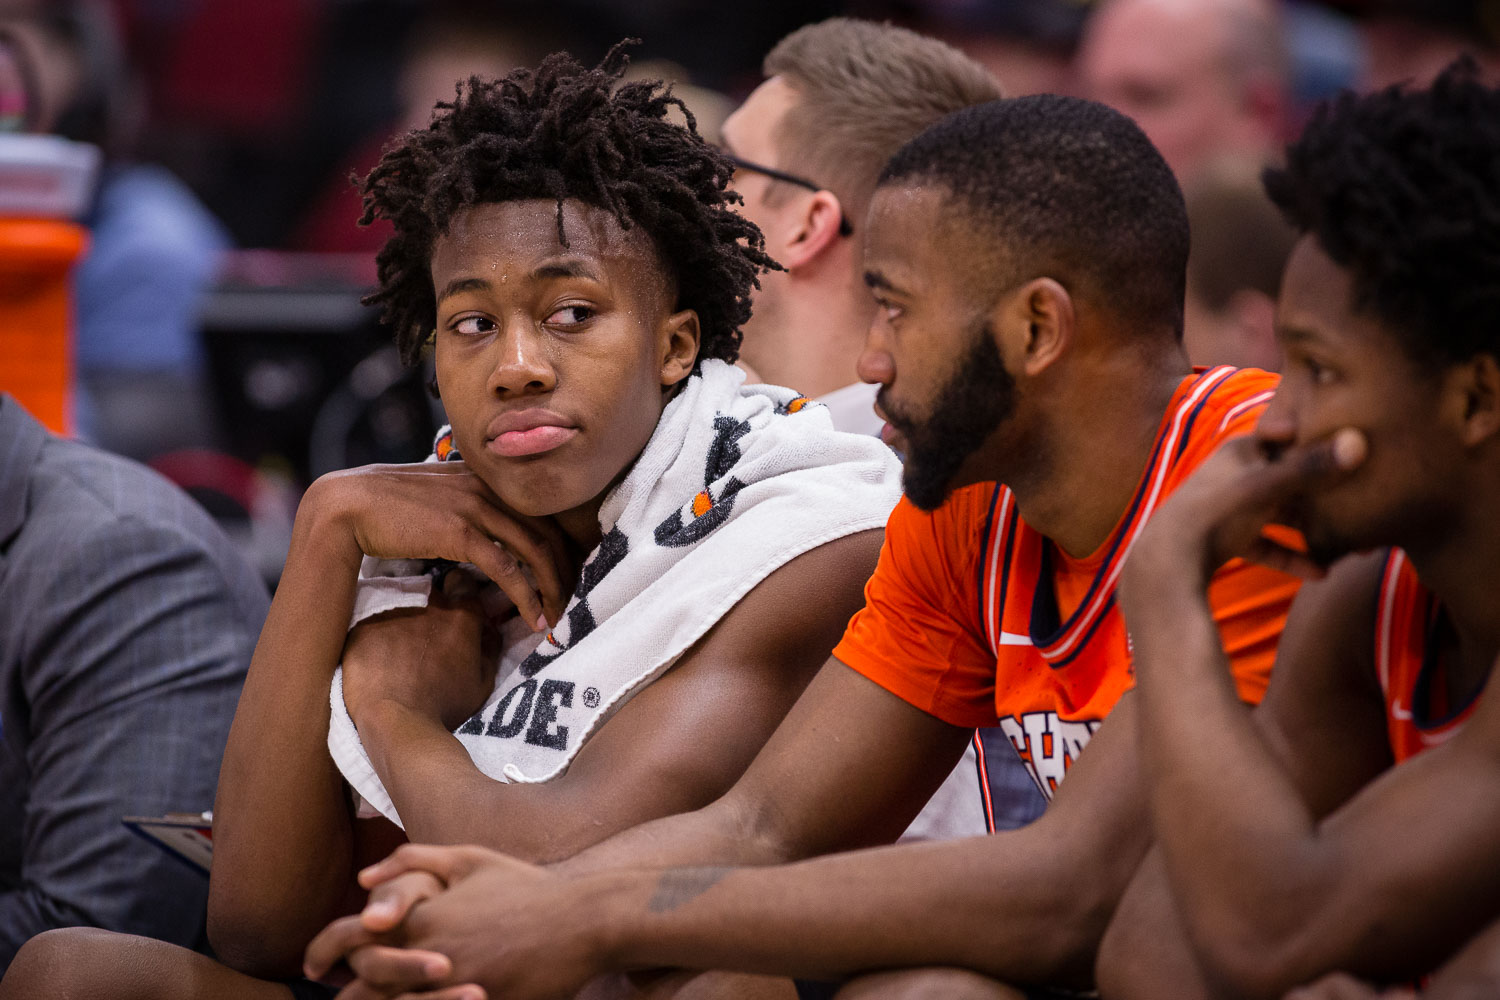 Illinois+guard+Ayo+Dosunmu+%2811%29+looks+down+the+rest+of+the+bench+during+the+game+against+Iowa+in+the+second+round+of+the+Big+Ten+Tournament+at+the+United+Center+on+Thursday%2C+March+14.+The+Illini+lost+83-62.